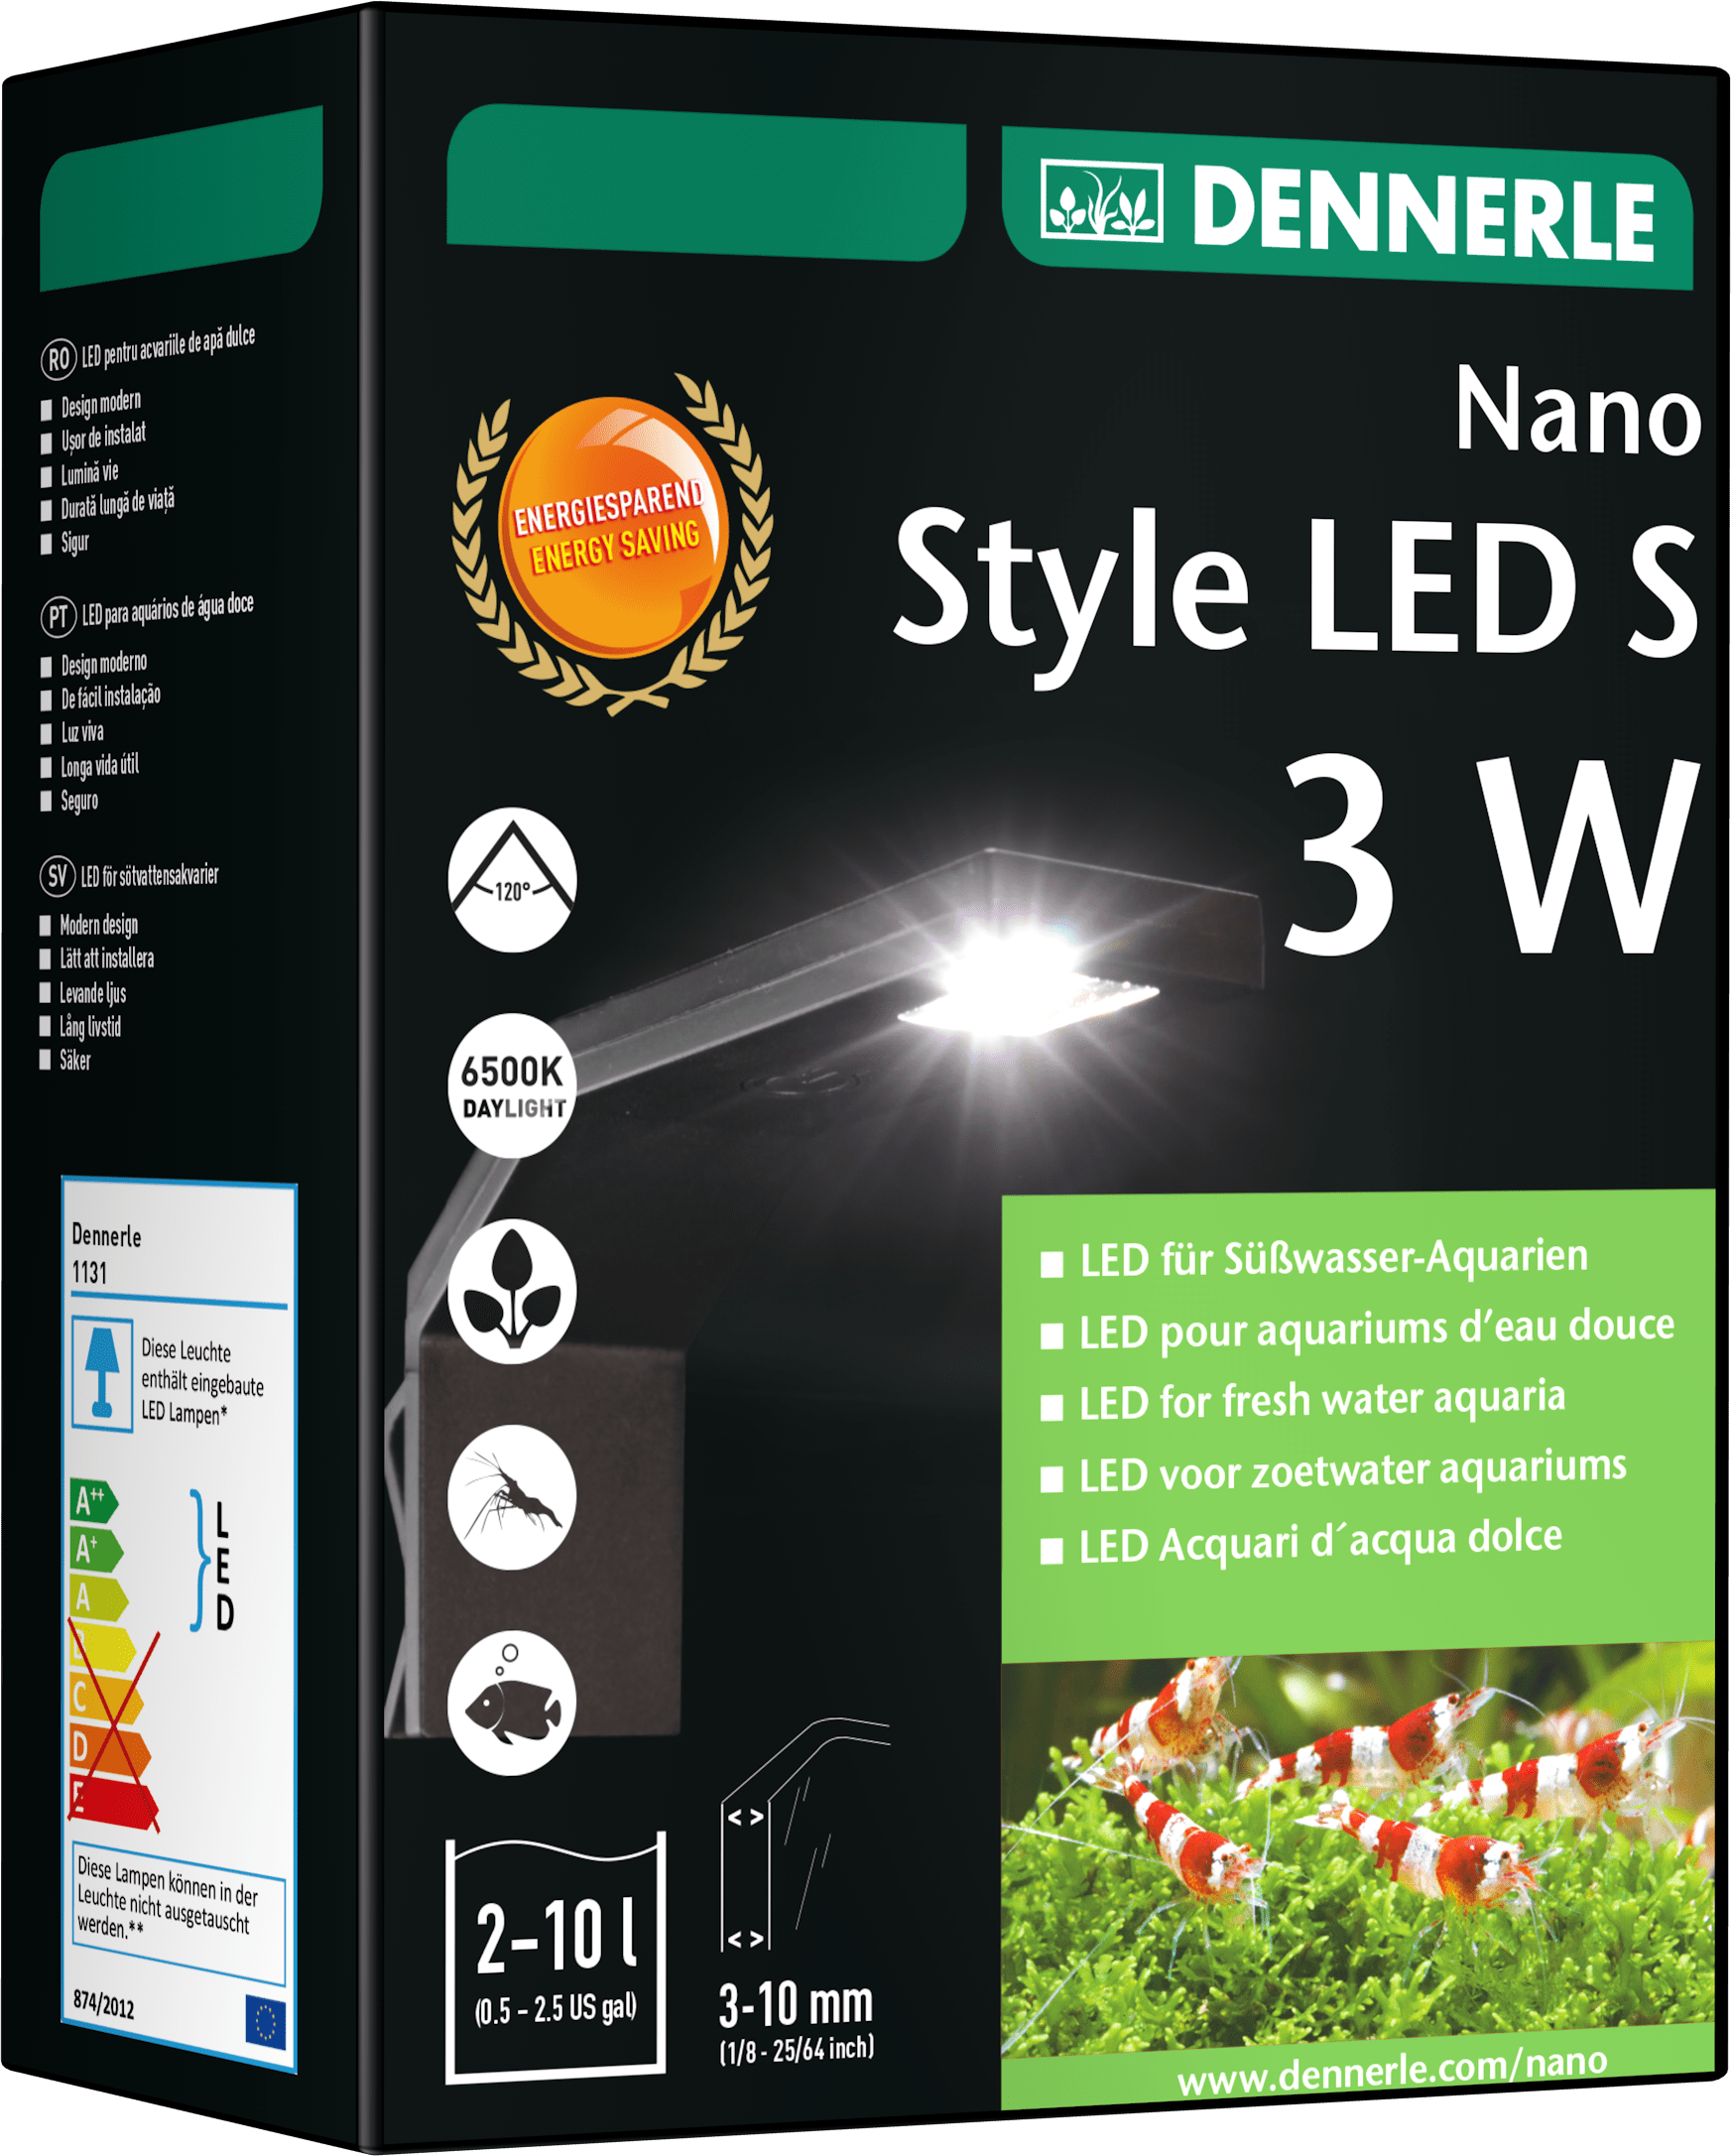 Eclairage Led Dennerle Nano Style Led Dennerle